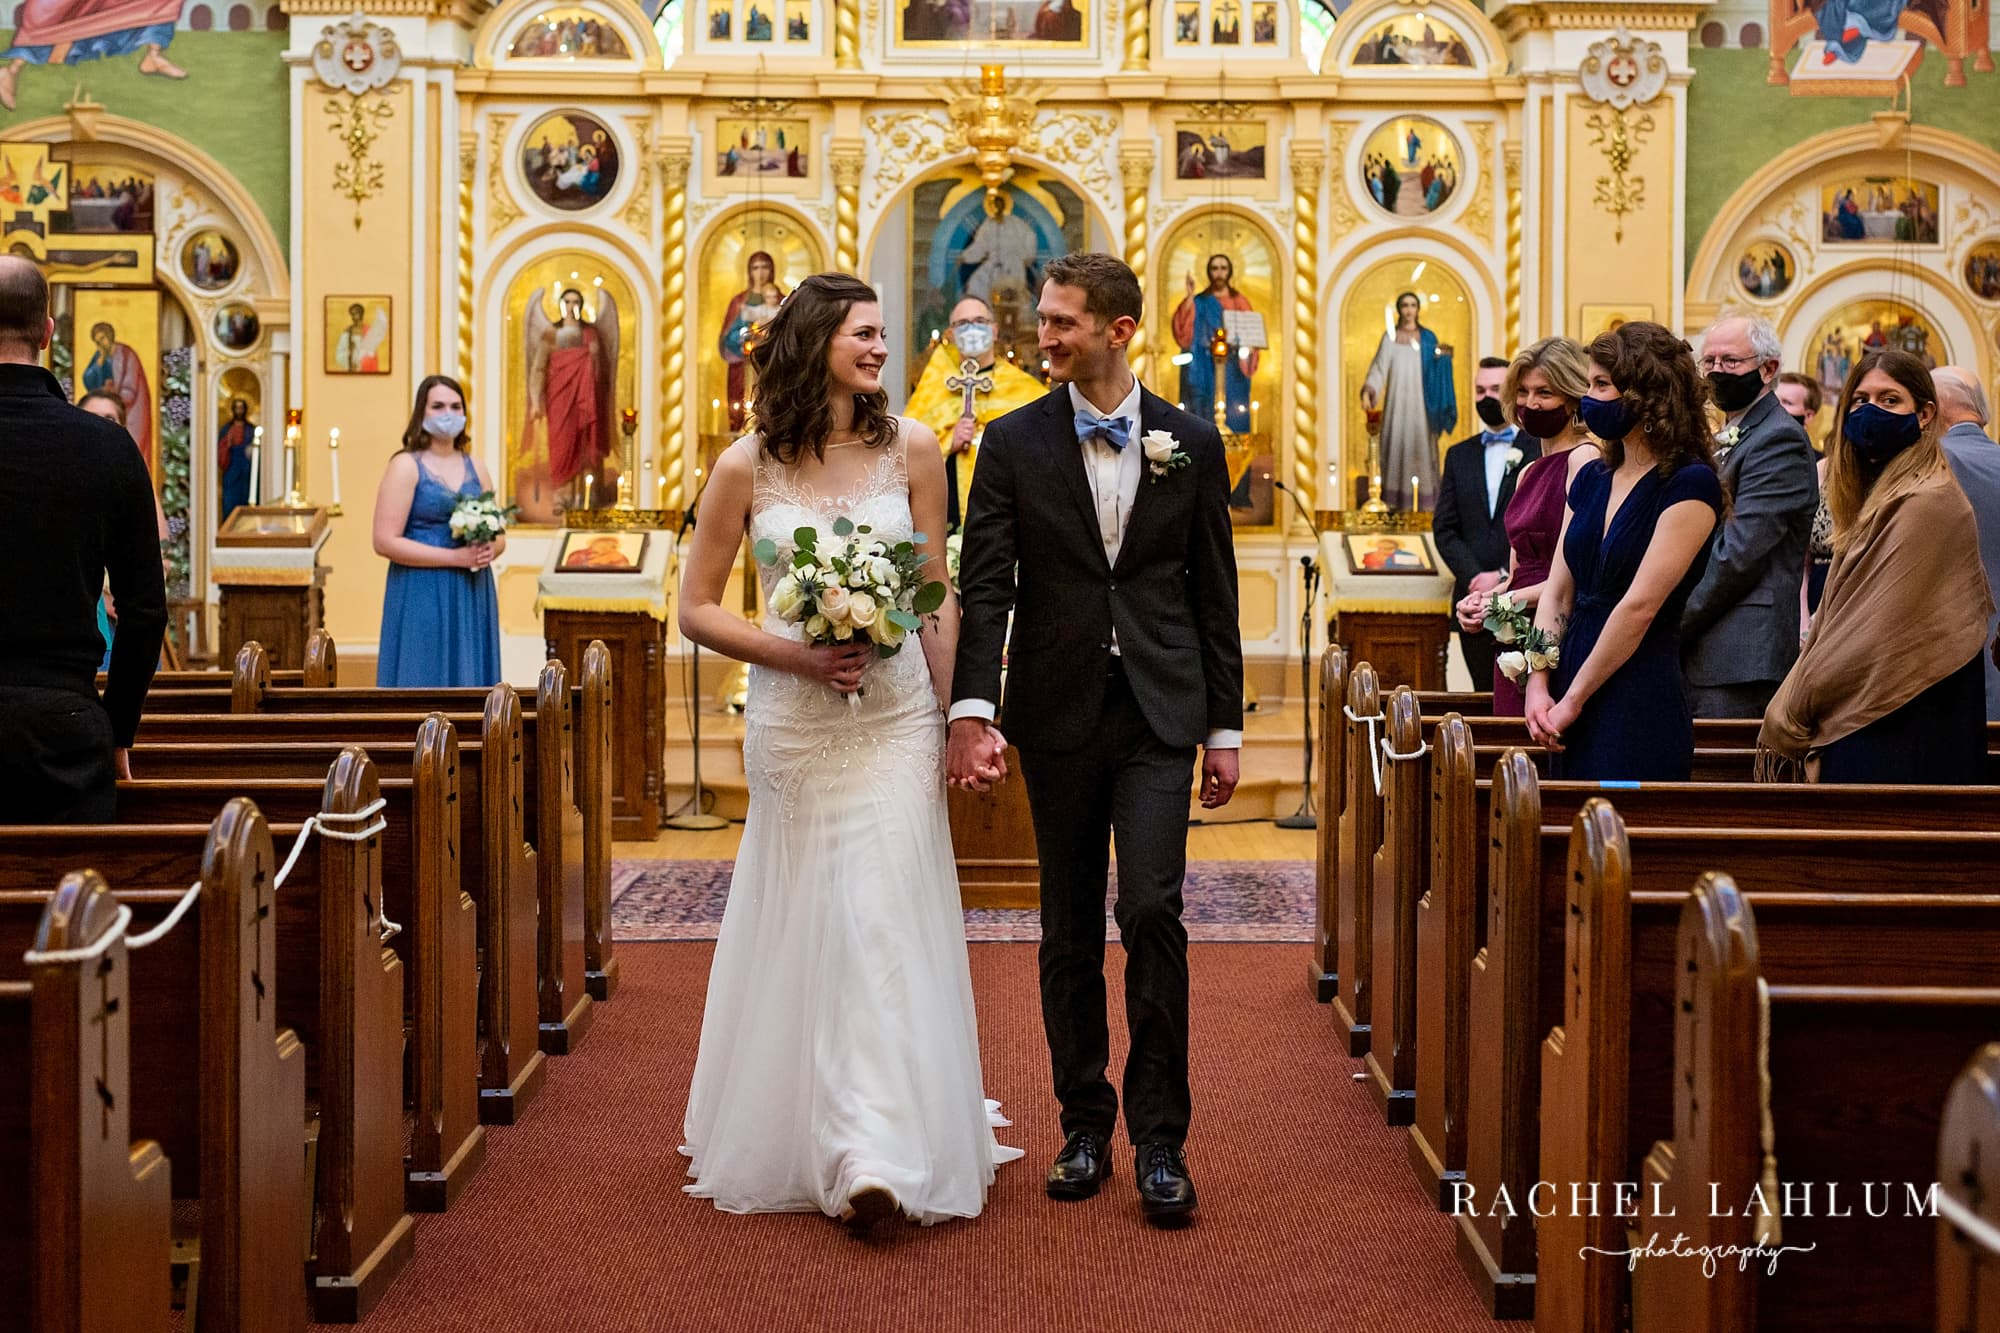 Bride and groom walk down the aisle after exchanging vows in St. Mary's Orthodox Cathedral.